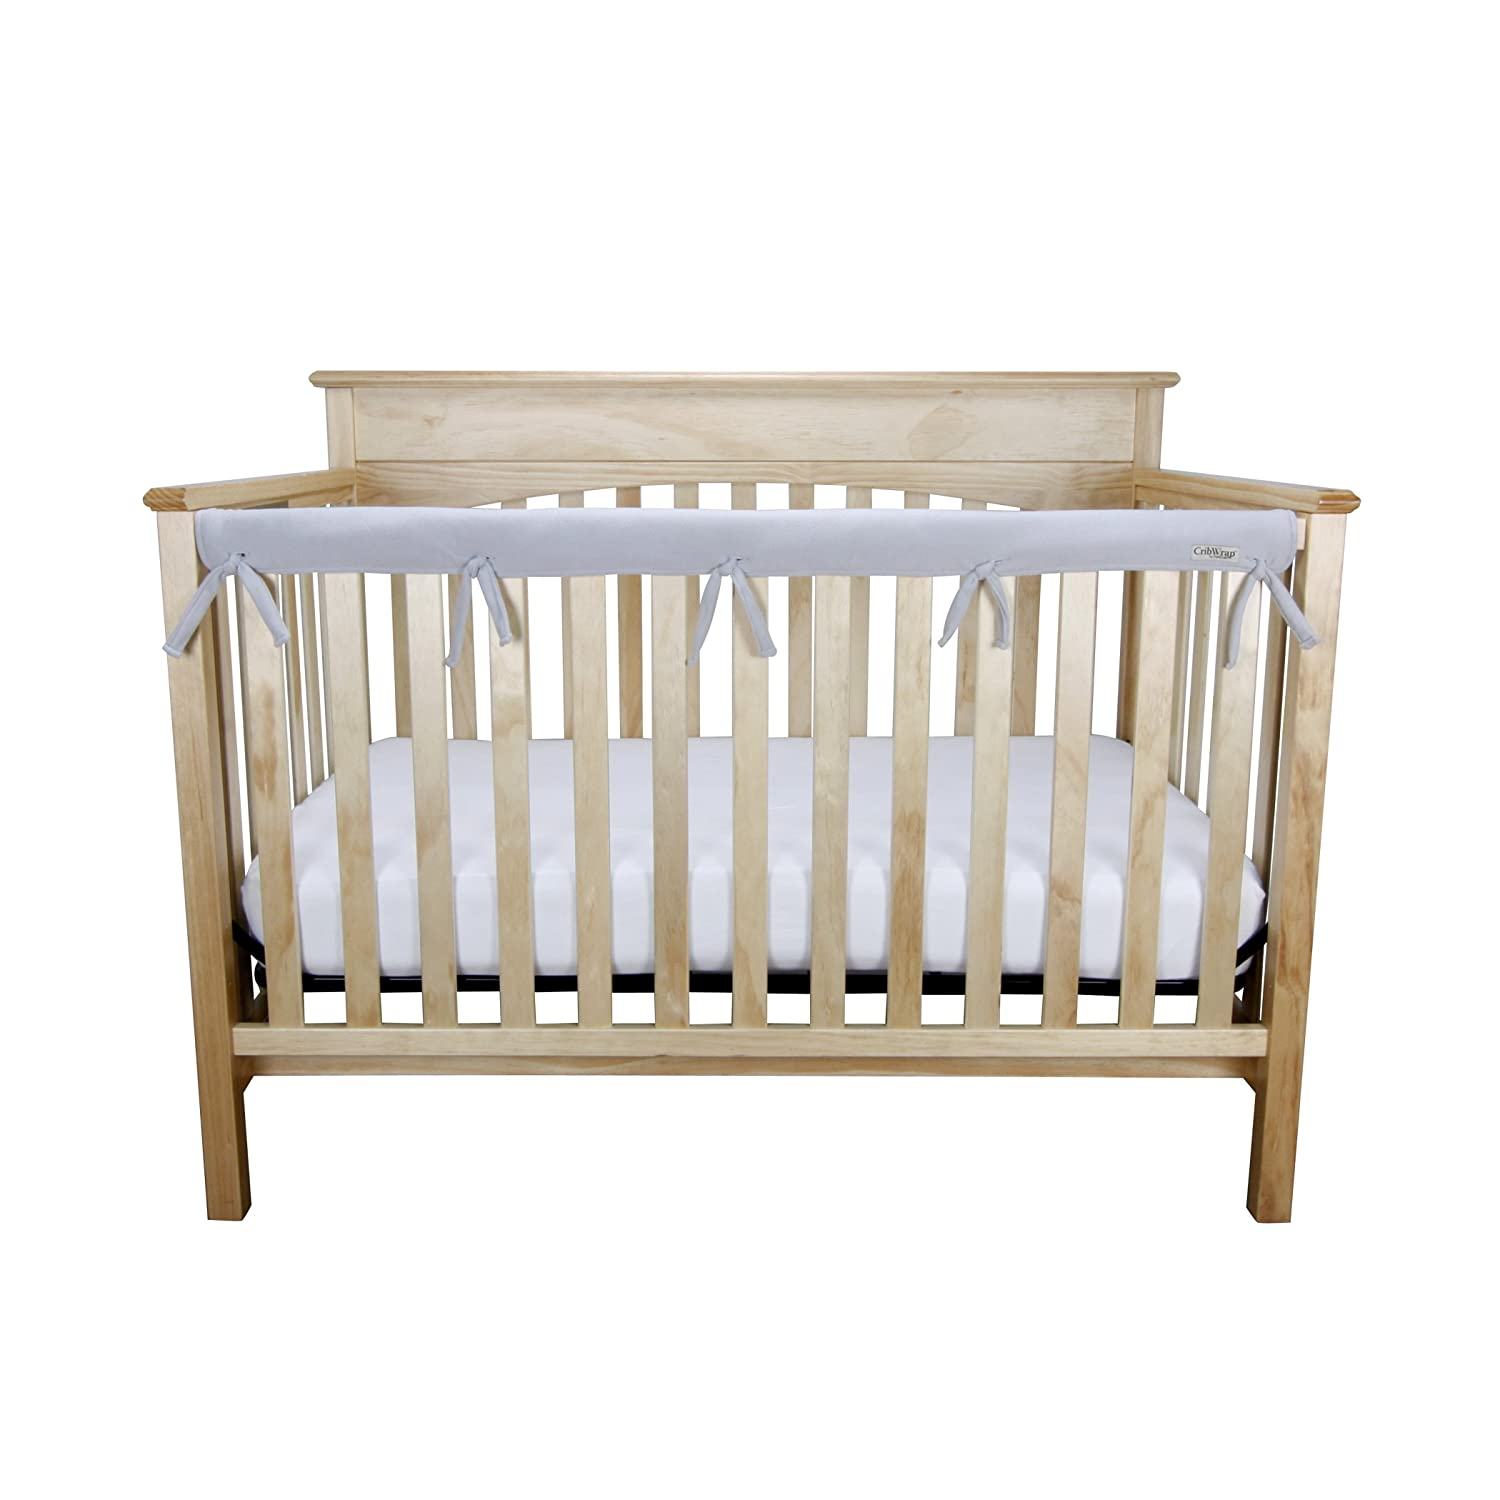 Trend Lab Waterproof CribWrap Rail Cover - For Narrow Long Crib Rails Made to Fit Rails up to 8 Around 109095